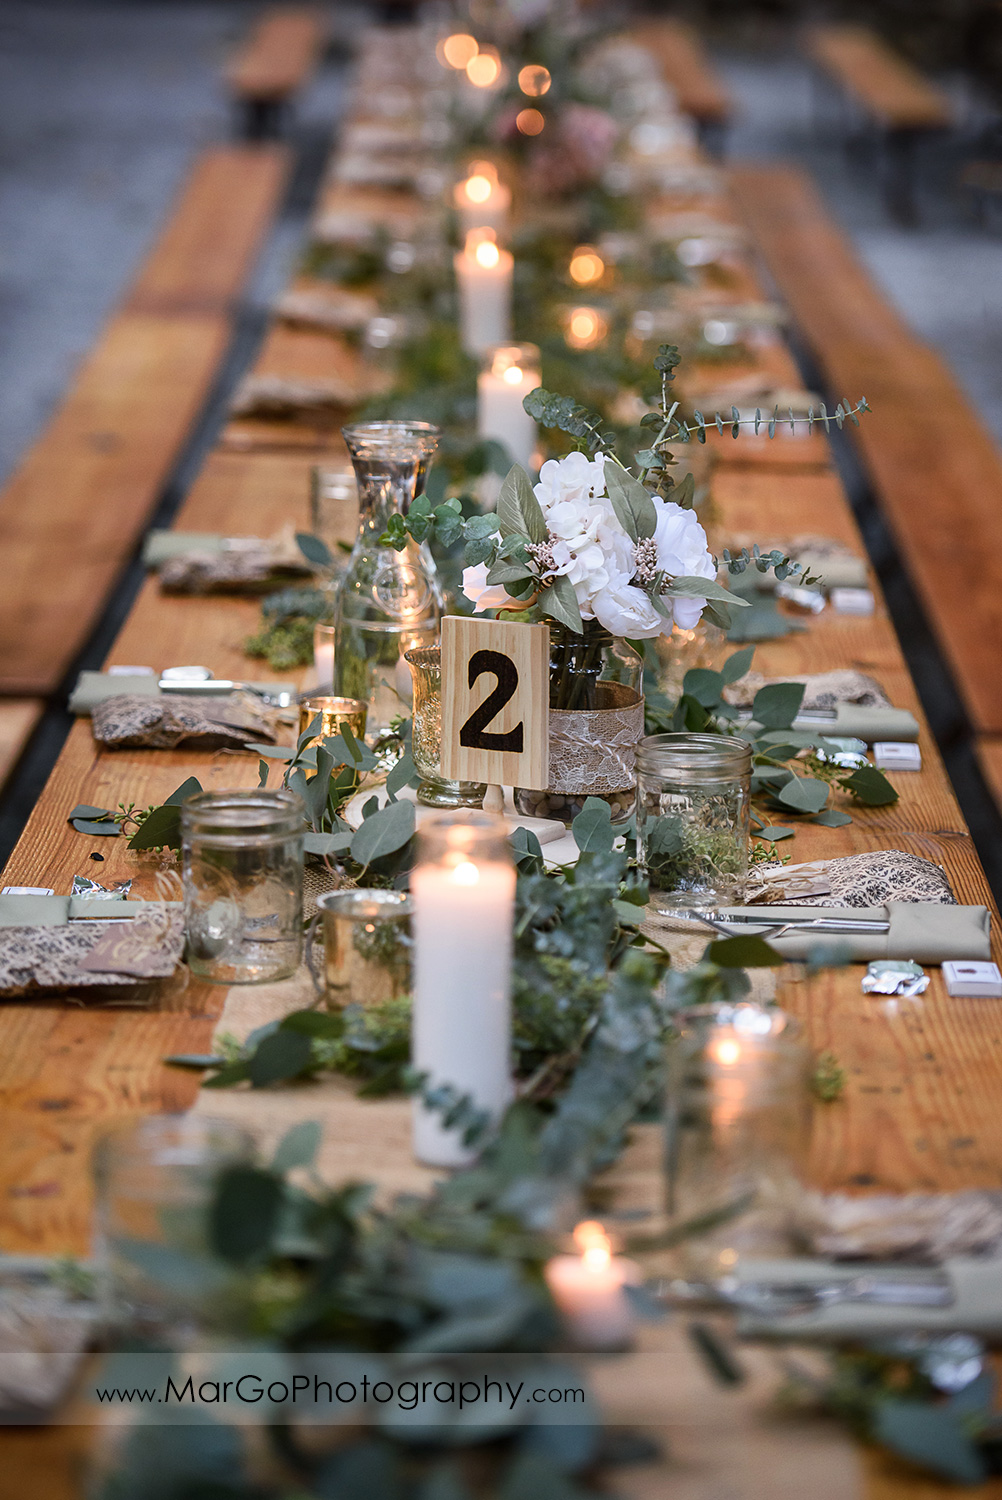 wedding reception tables decorated with green leaves and white flowers at Saratoga Springs Cathedral Grove